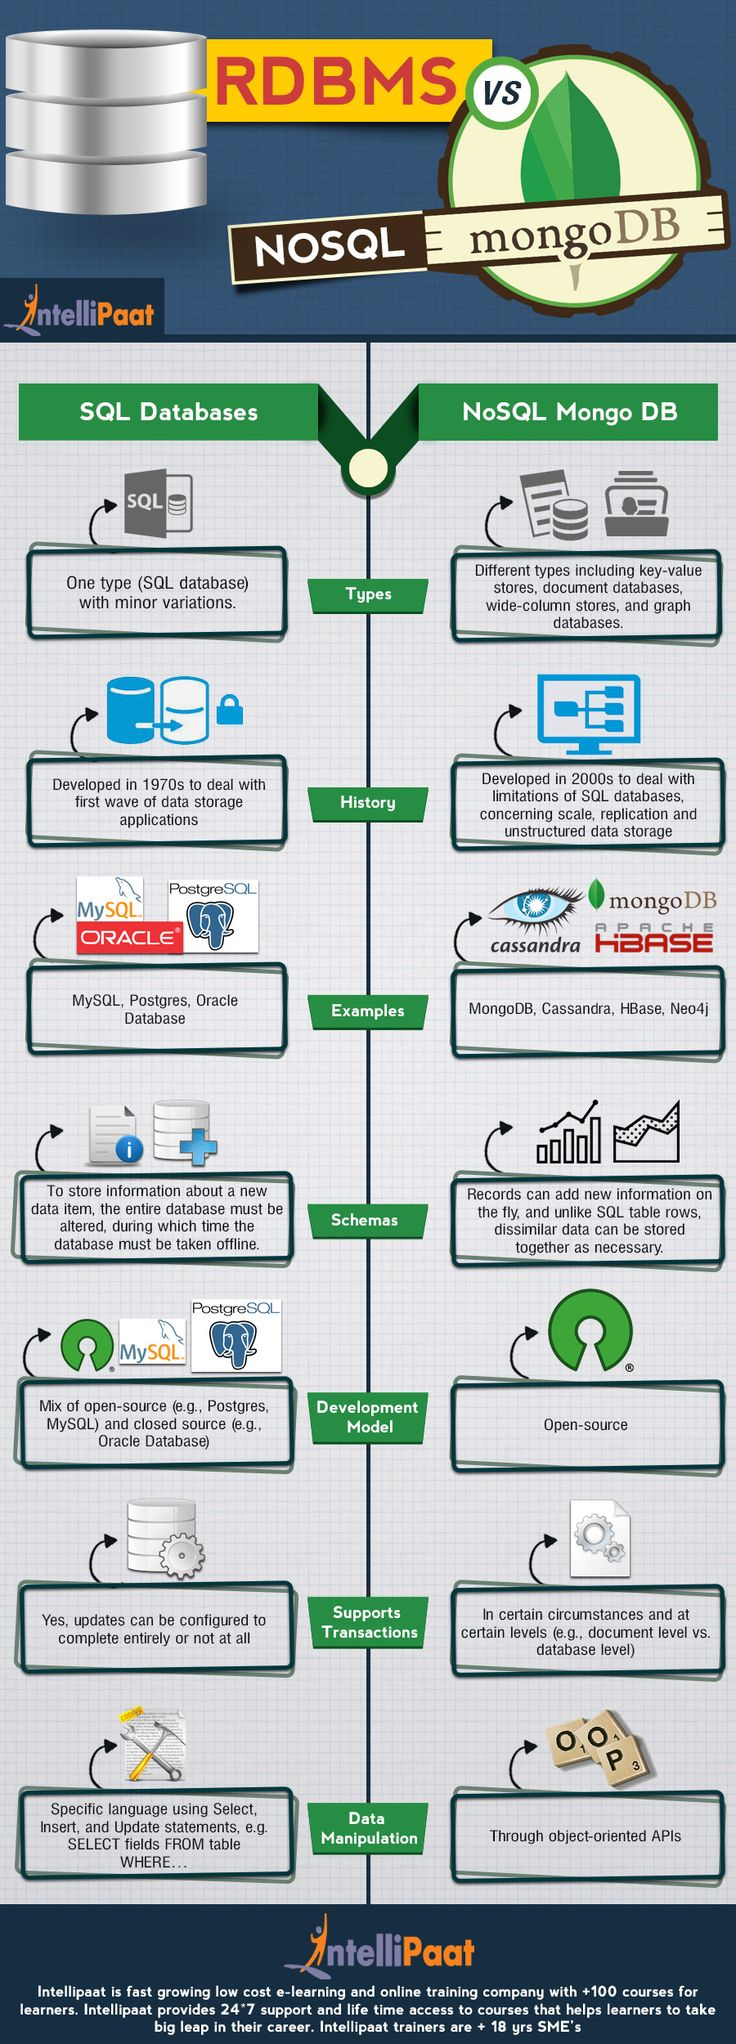 19 best sqlserver images on pinterest computer science data rdbms vs nosql a comparison between sql nosql mongodb database pooptronica Image collections